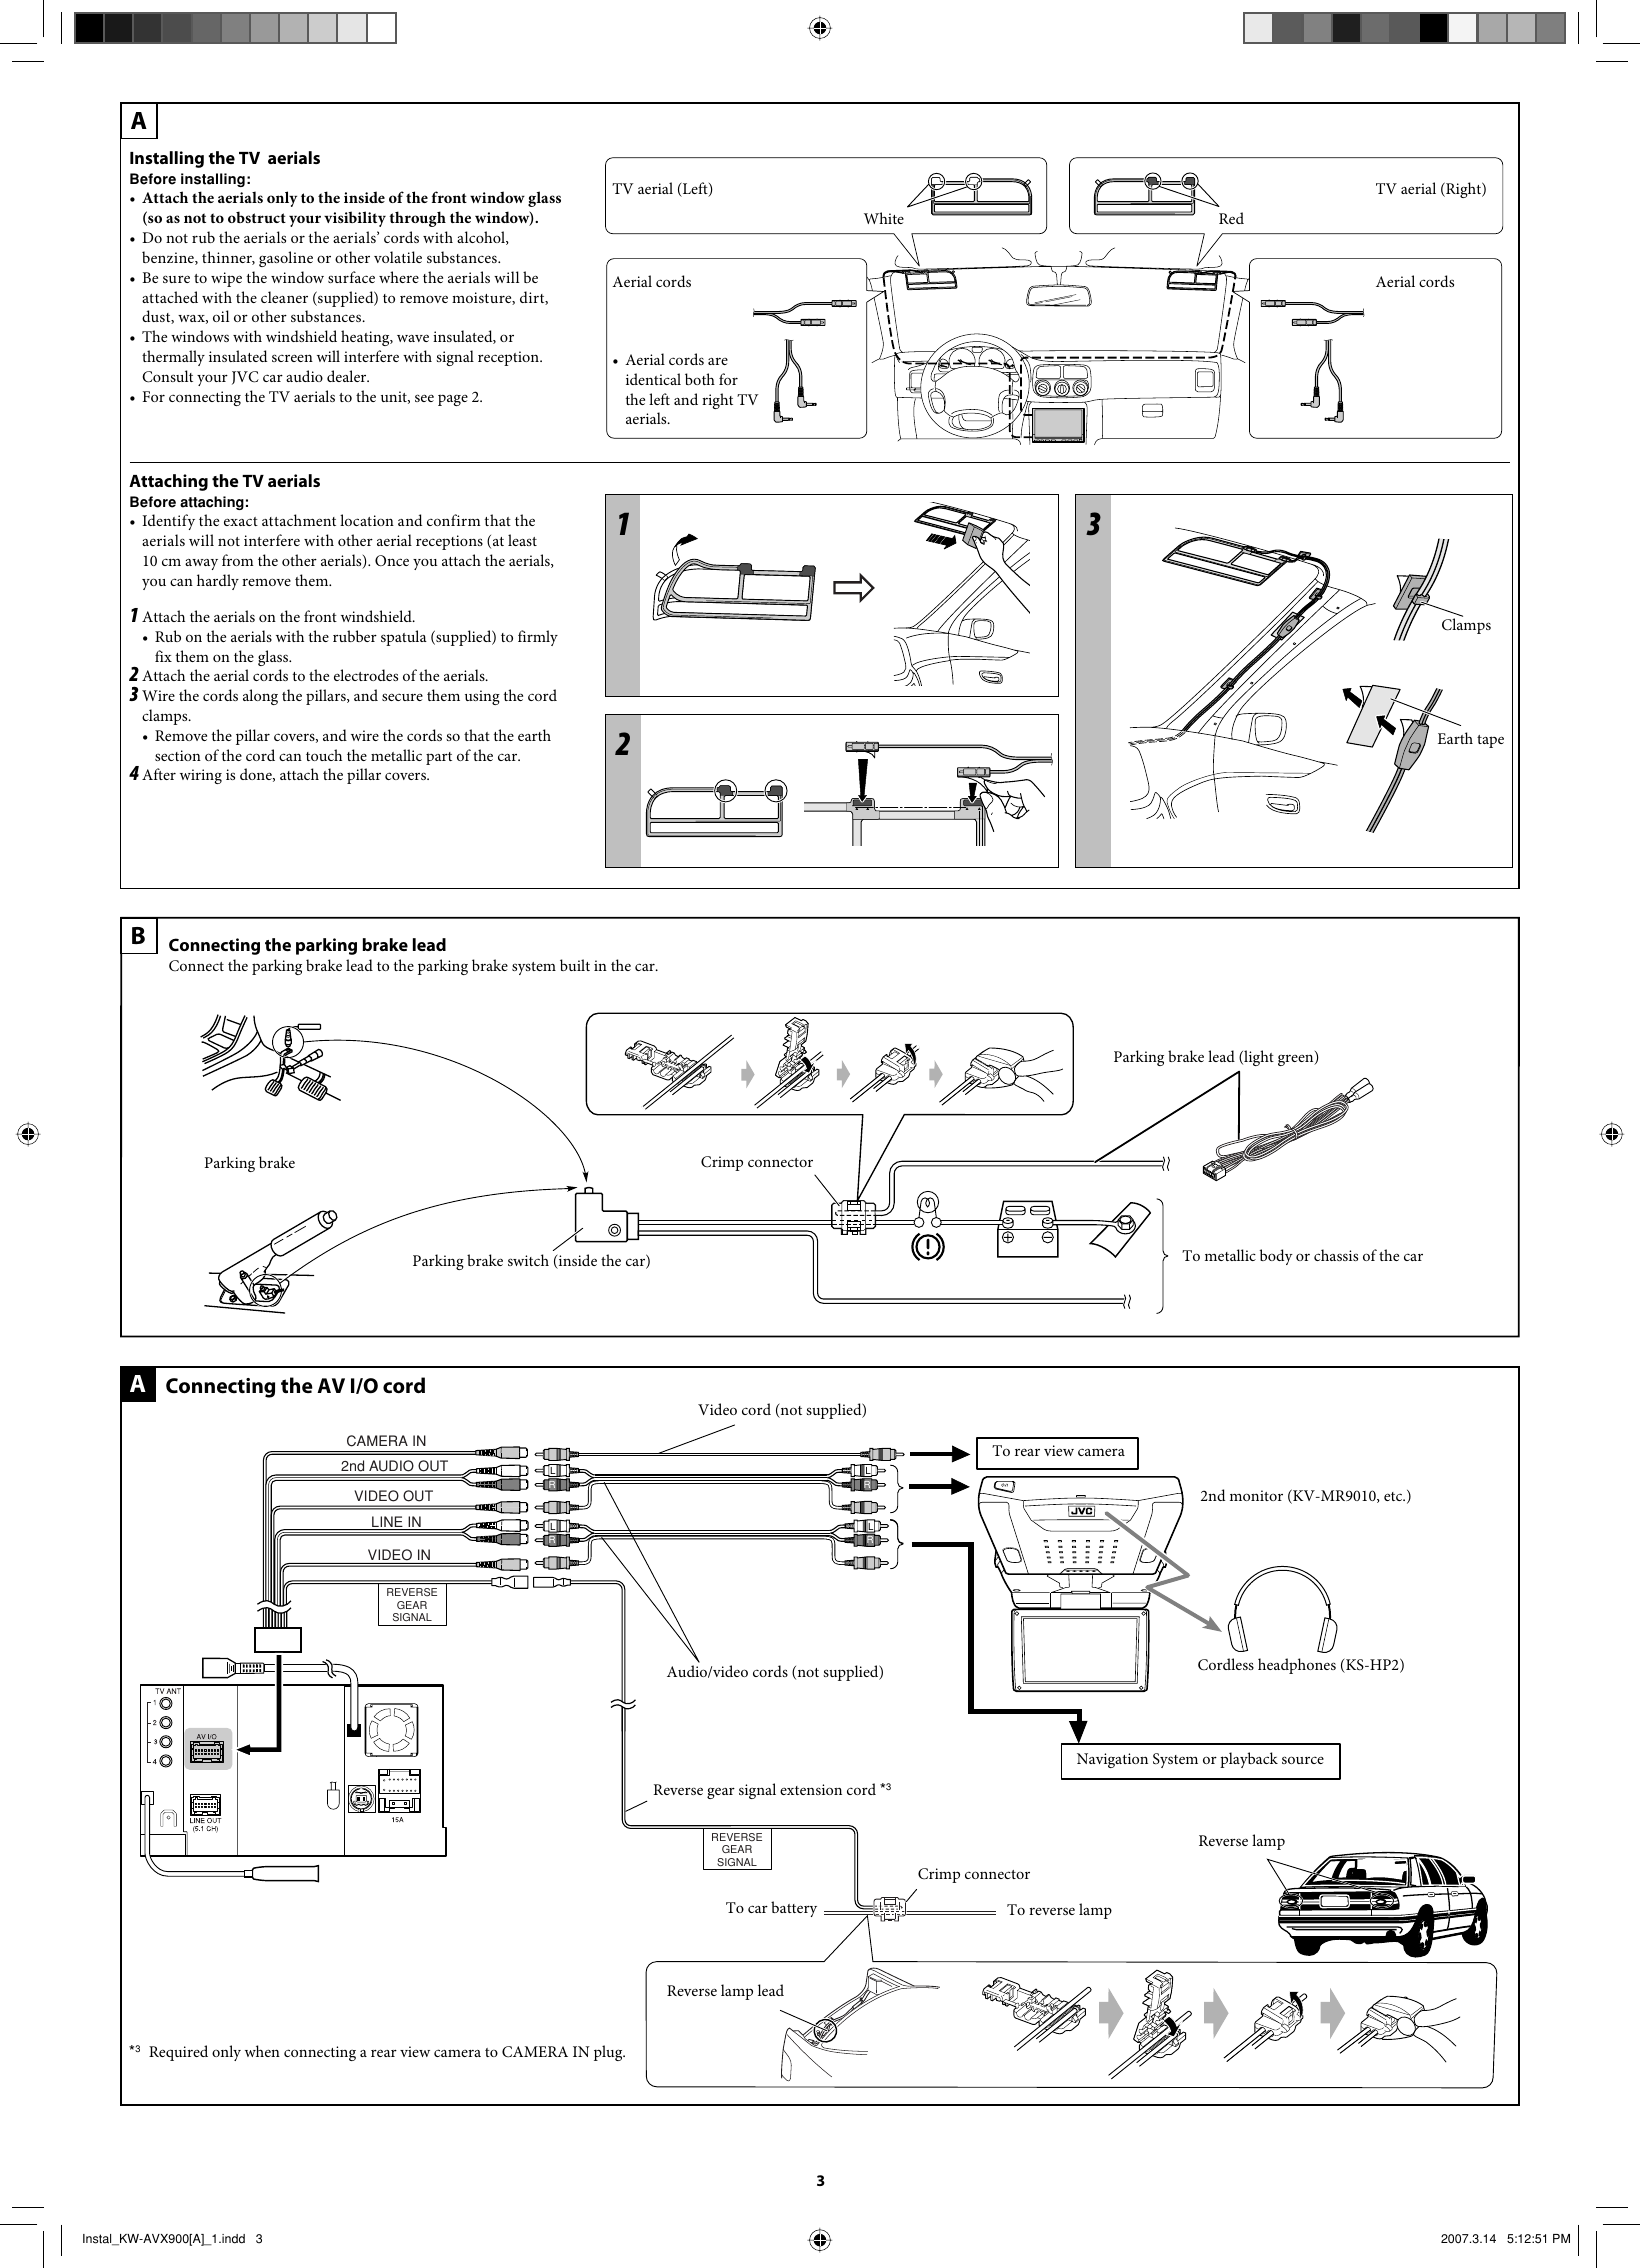 Jvc Kw Avx900a Installation User Manual Lvt1670 005a Avx 900 Wiring Diagram Page 3 Of 4